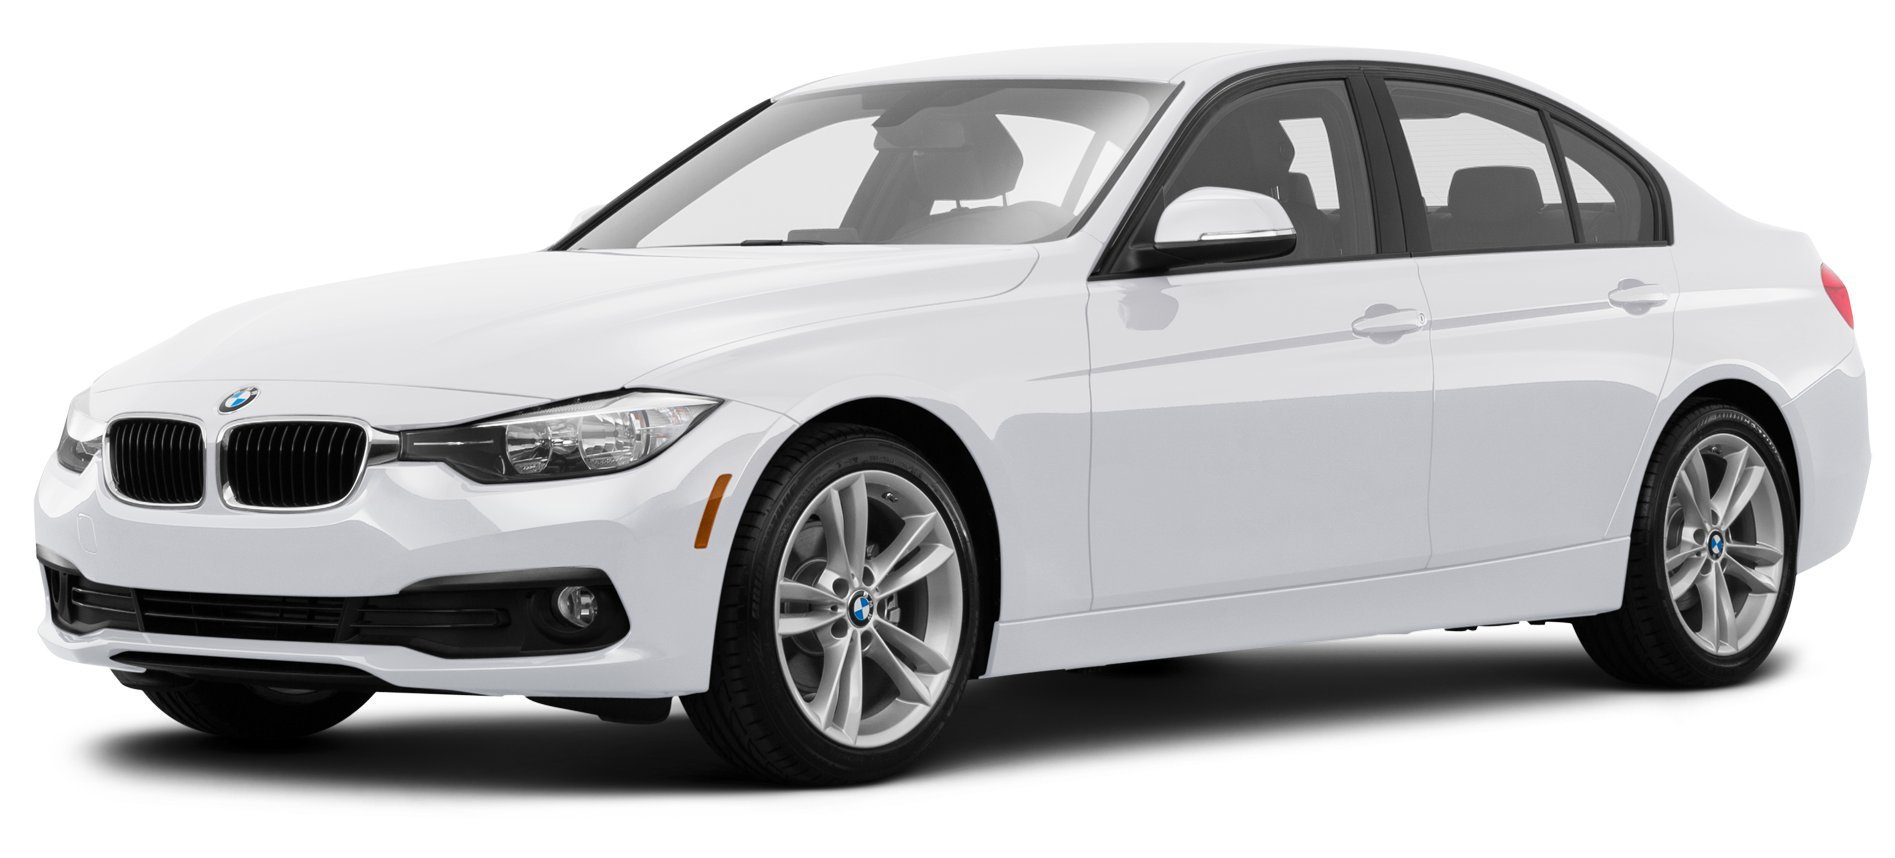 ... 2016 BMW 320i, 4 Door Sedan Rear Wheel Drive. 2016 Dodge Charger ...